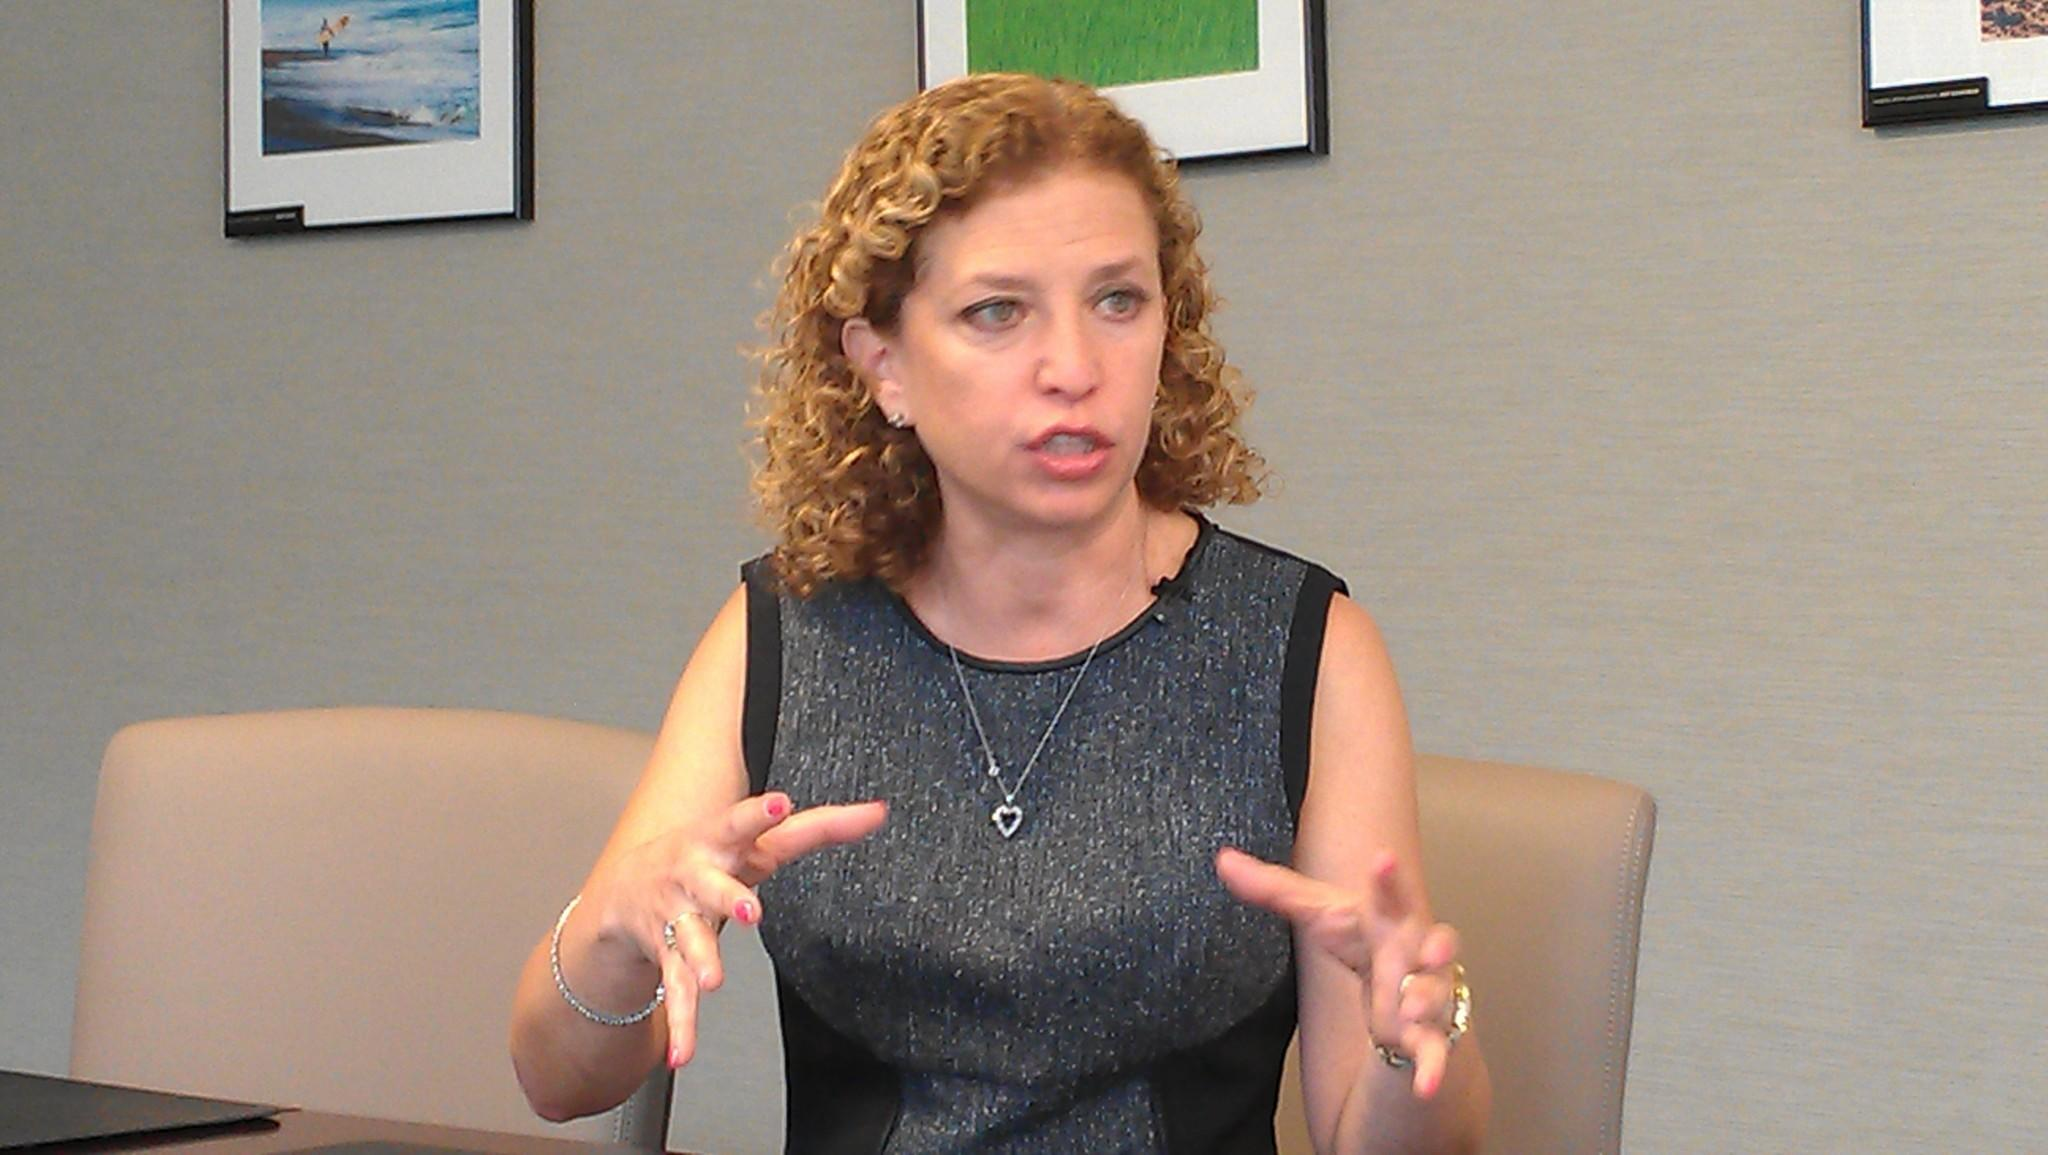 U.S. Rep. Debbie Wasserman Schultz of Weston, chairwoman of the Democratic National Committee, was at the Sun Sentinel editorial board on Monday, Sept. 15, 2014. (Photo by Anthony Man)